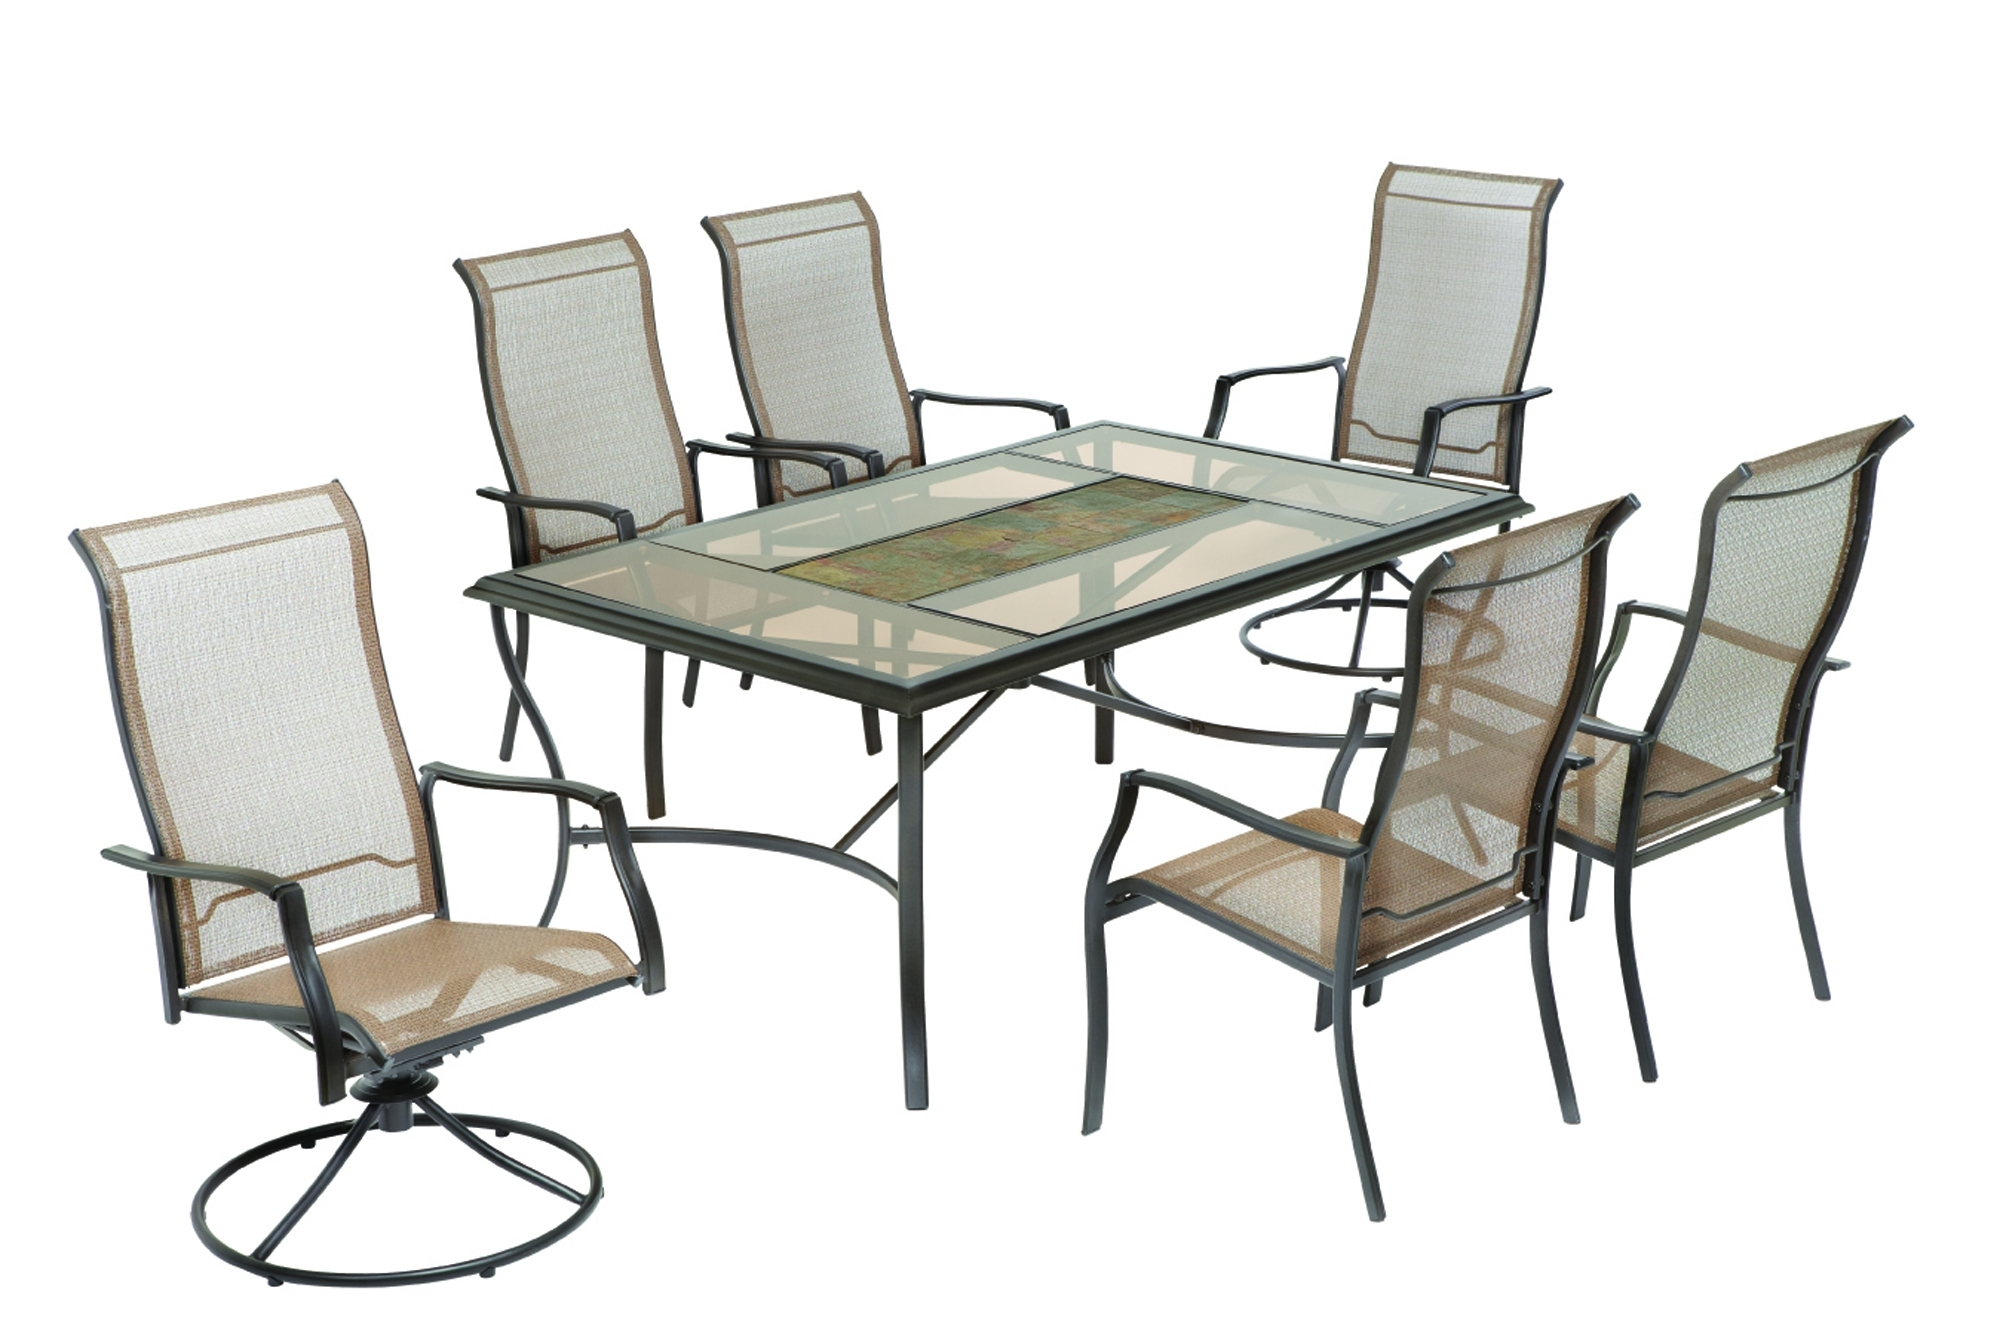 Newest Casual Living Worldwide Recalls Swivel Patio Chairs Due To Fall With Hampton Bay Rocking Patio Chairs (View 15 of 20)